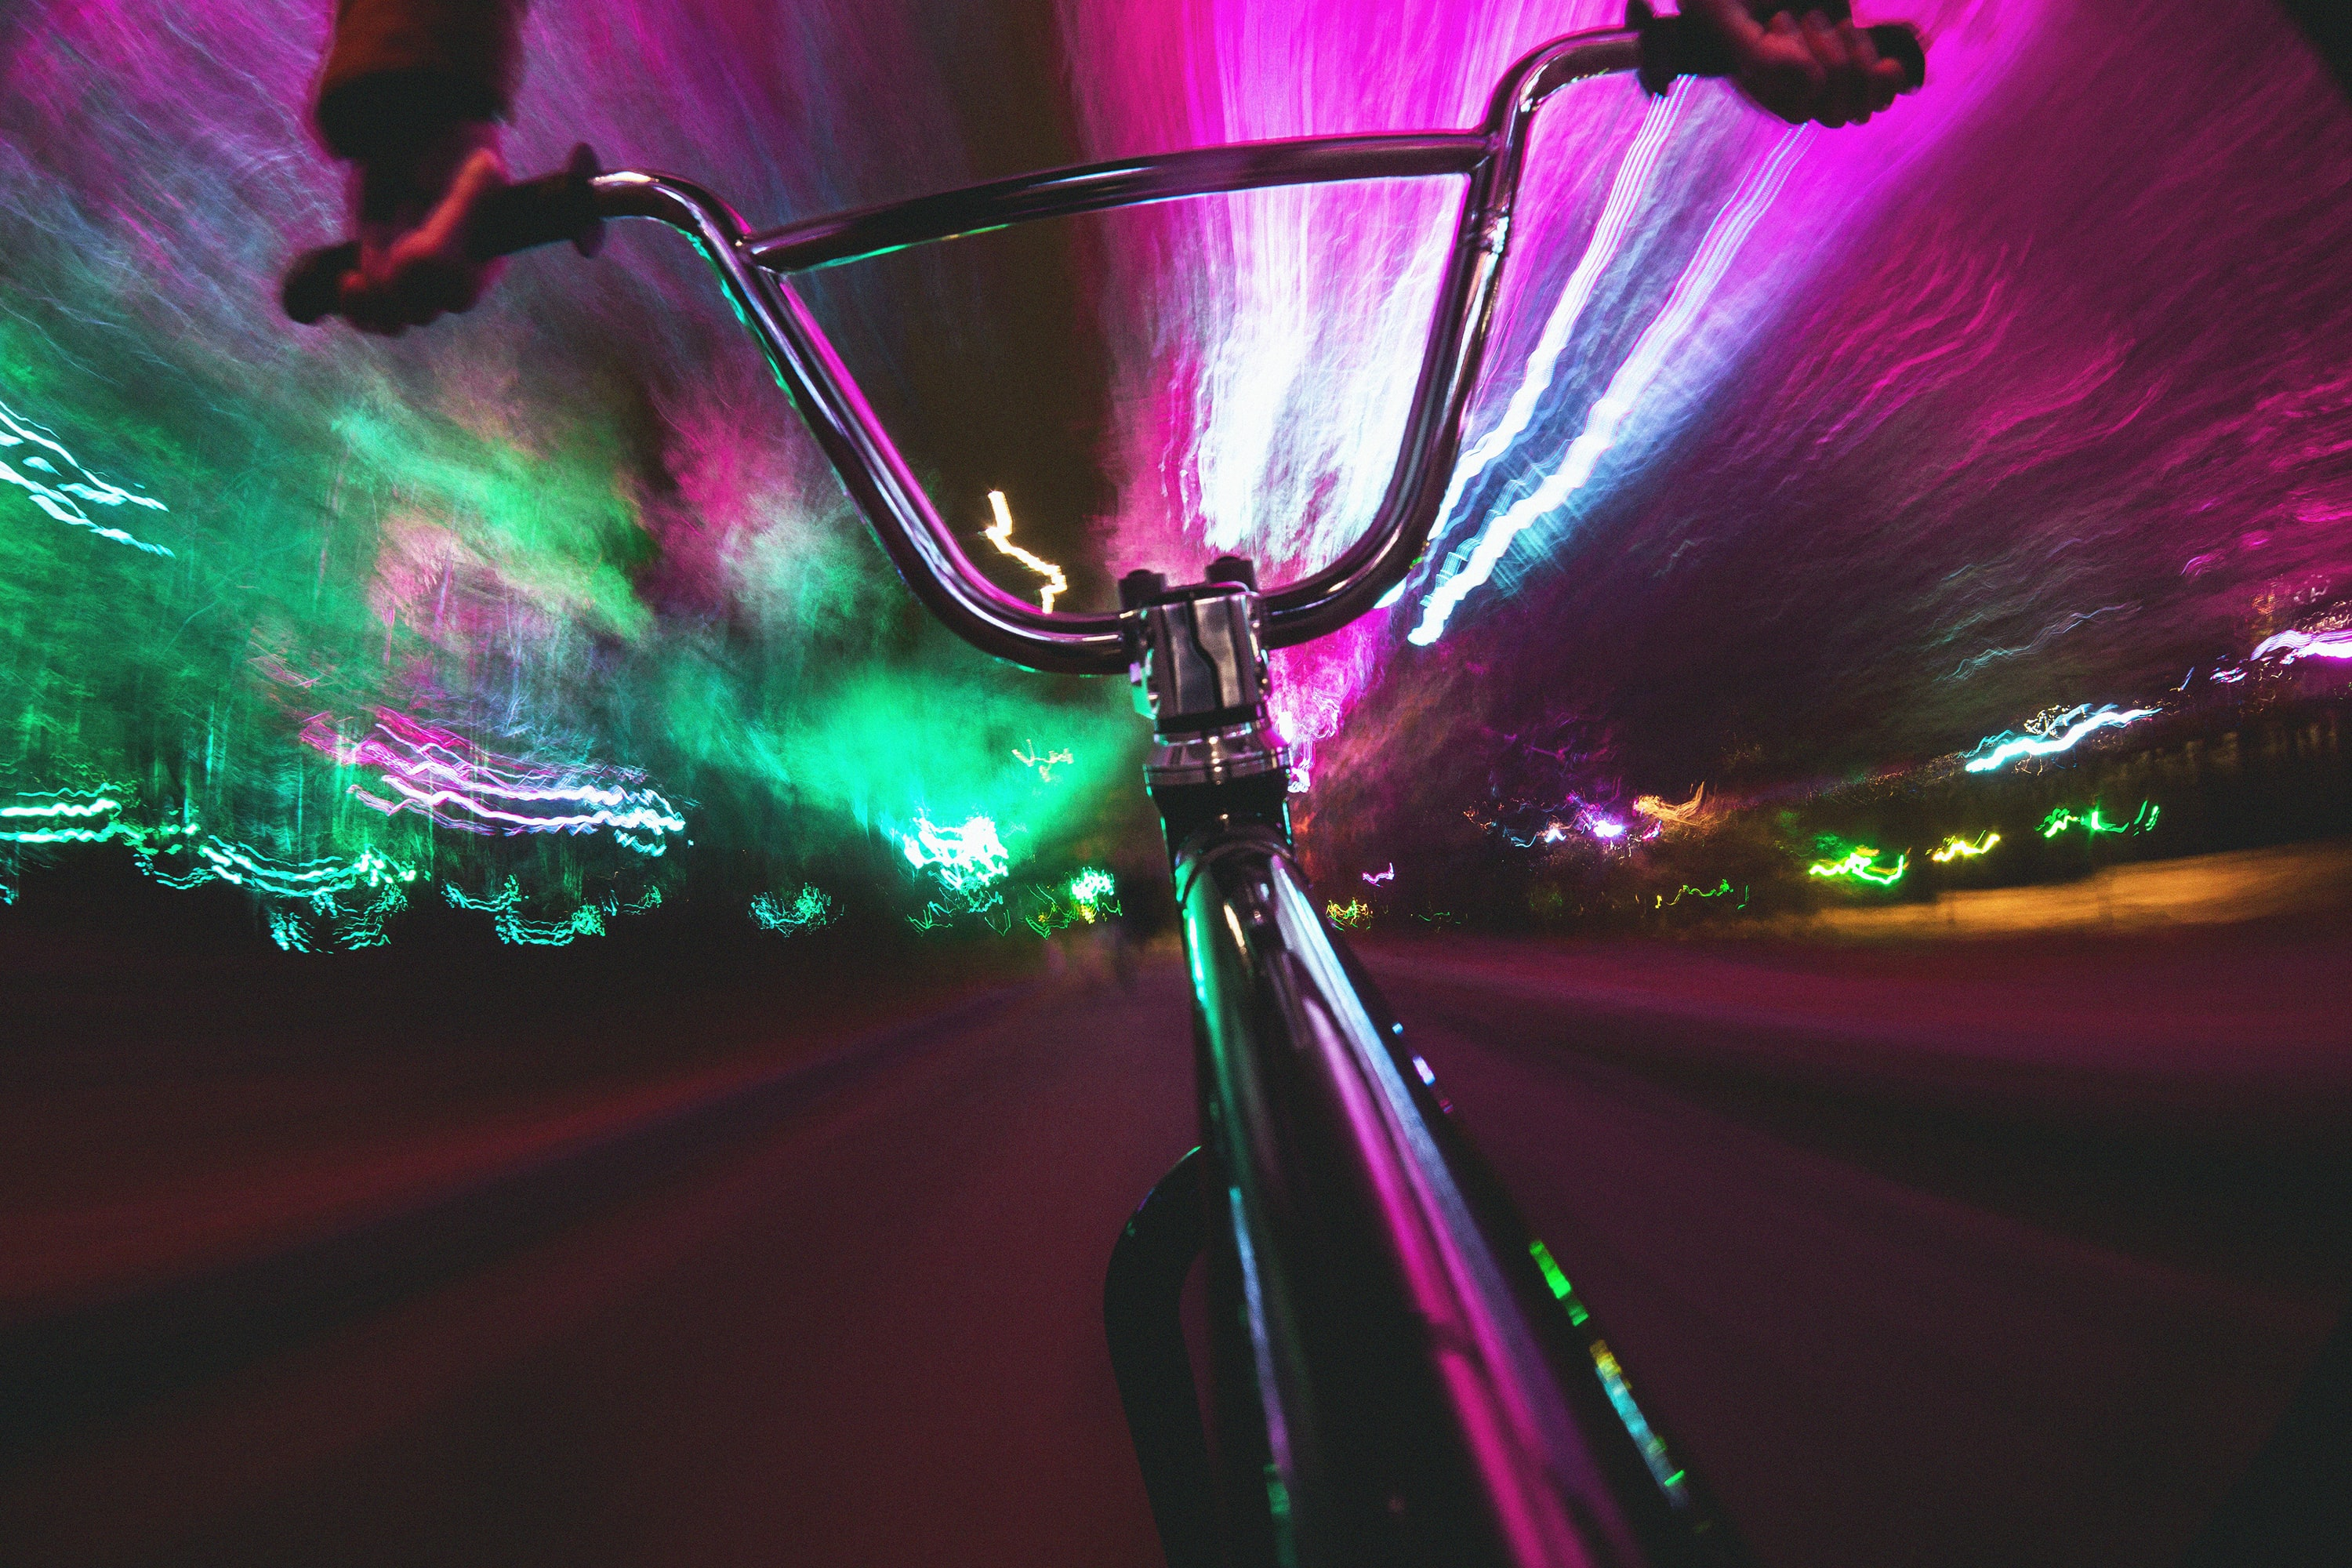 close-up photo of multicolored bicycle